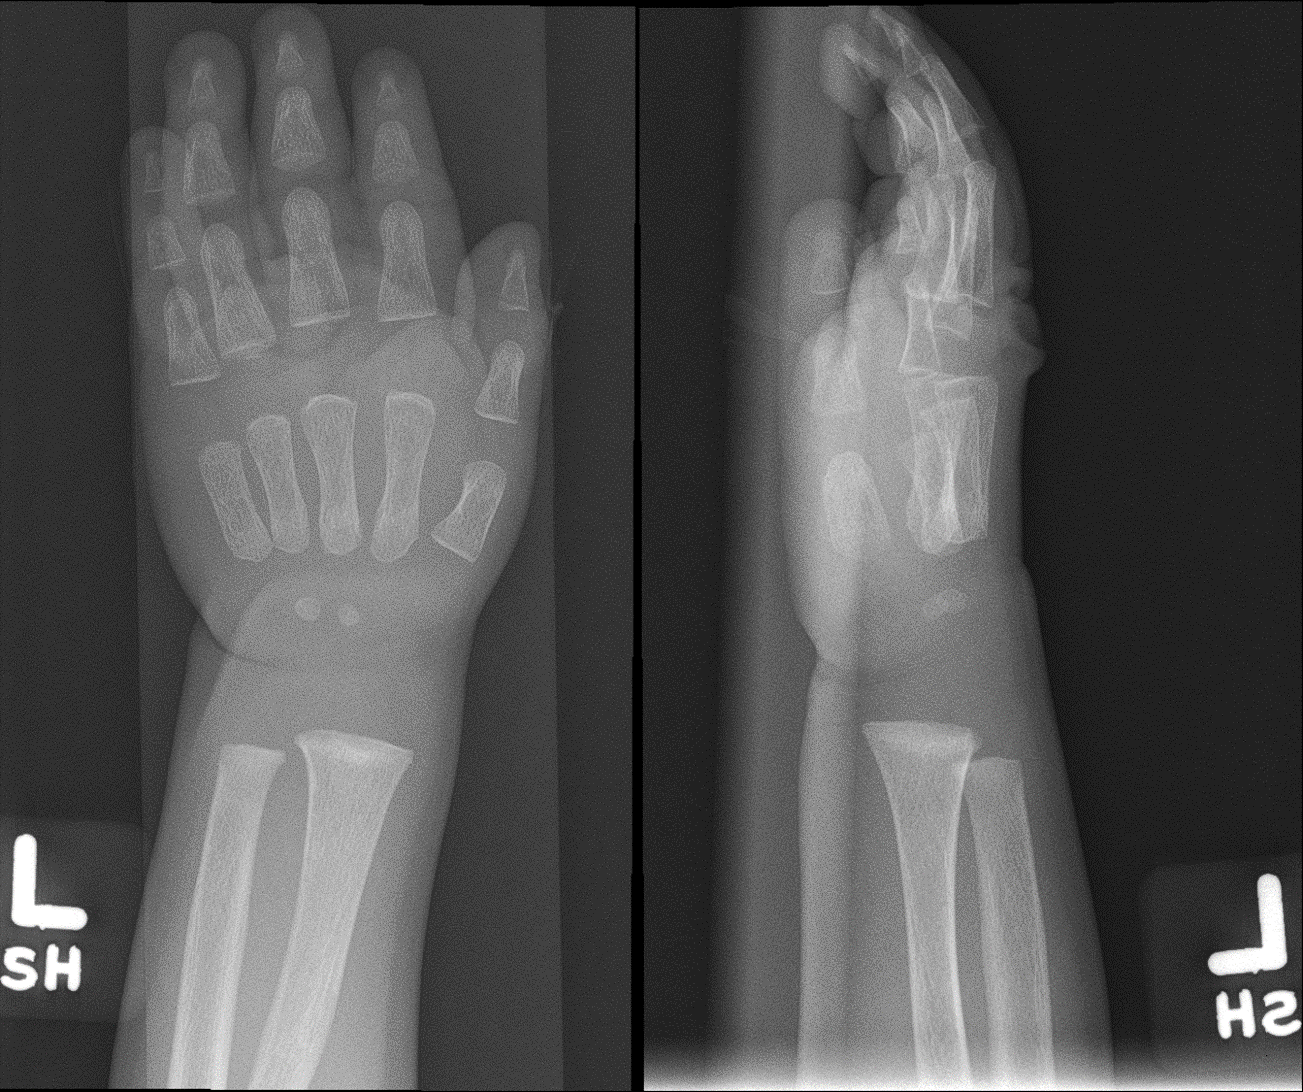 Radiograph of the left wrist (anteroposterior and lateral views) taken three months later showing improved density and appearance of the distal metaphysis after initiation of treatment for rickets. Improved mineralization of the bones also seen.